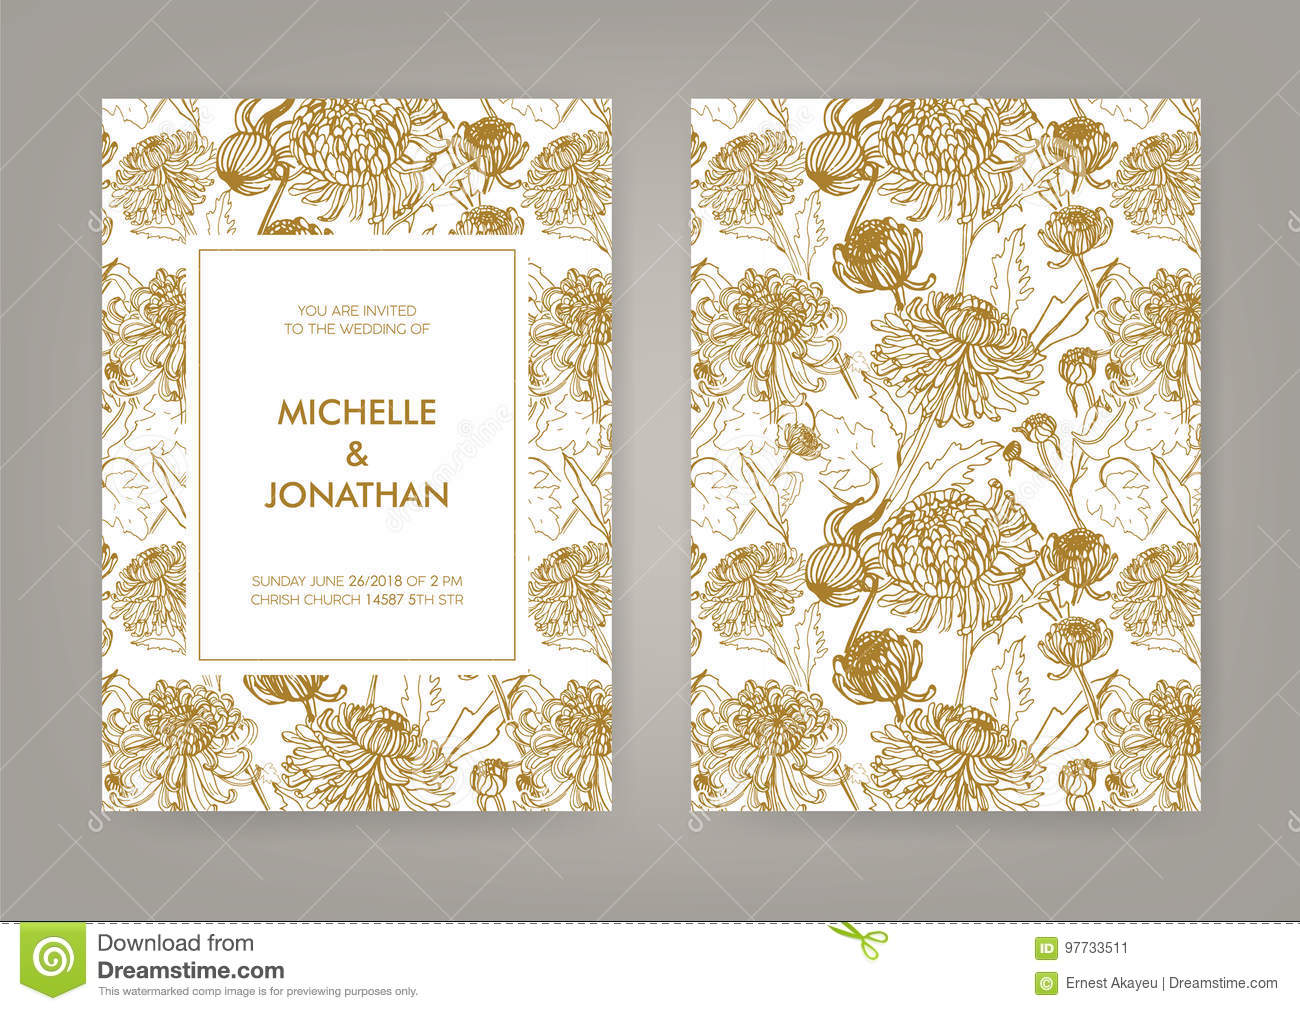 Wedding Invitation With Golden Japanese Chrysanthemum Vertical Card ...